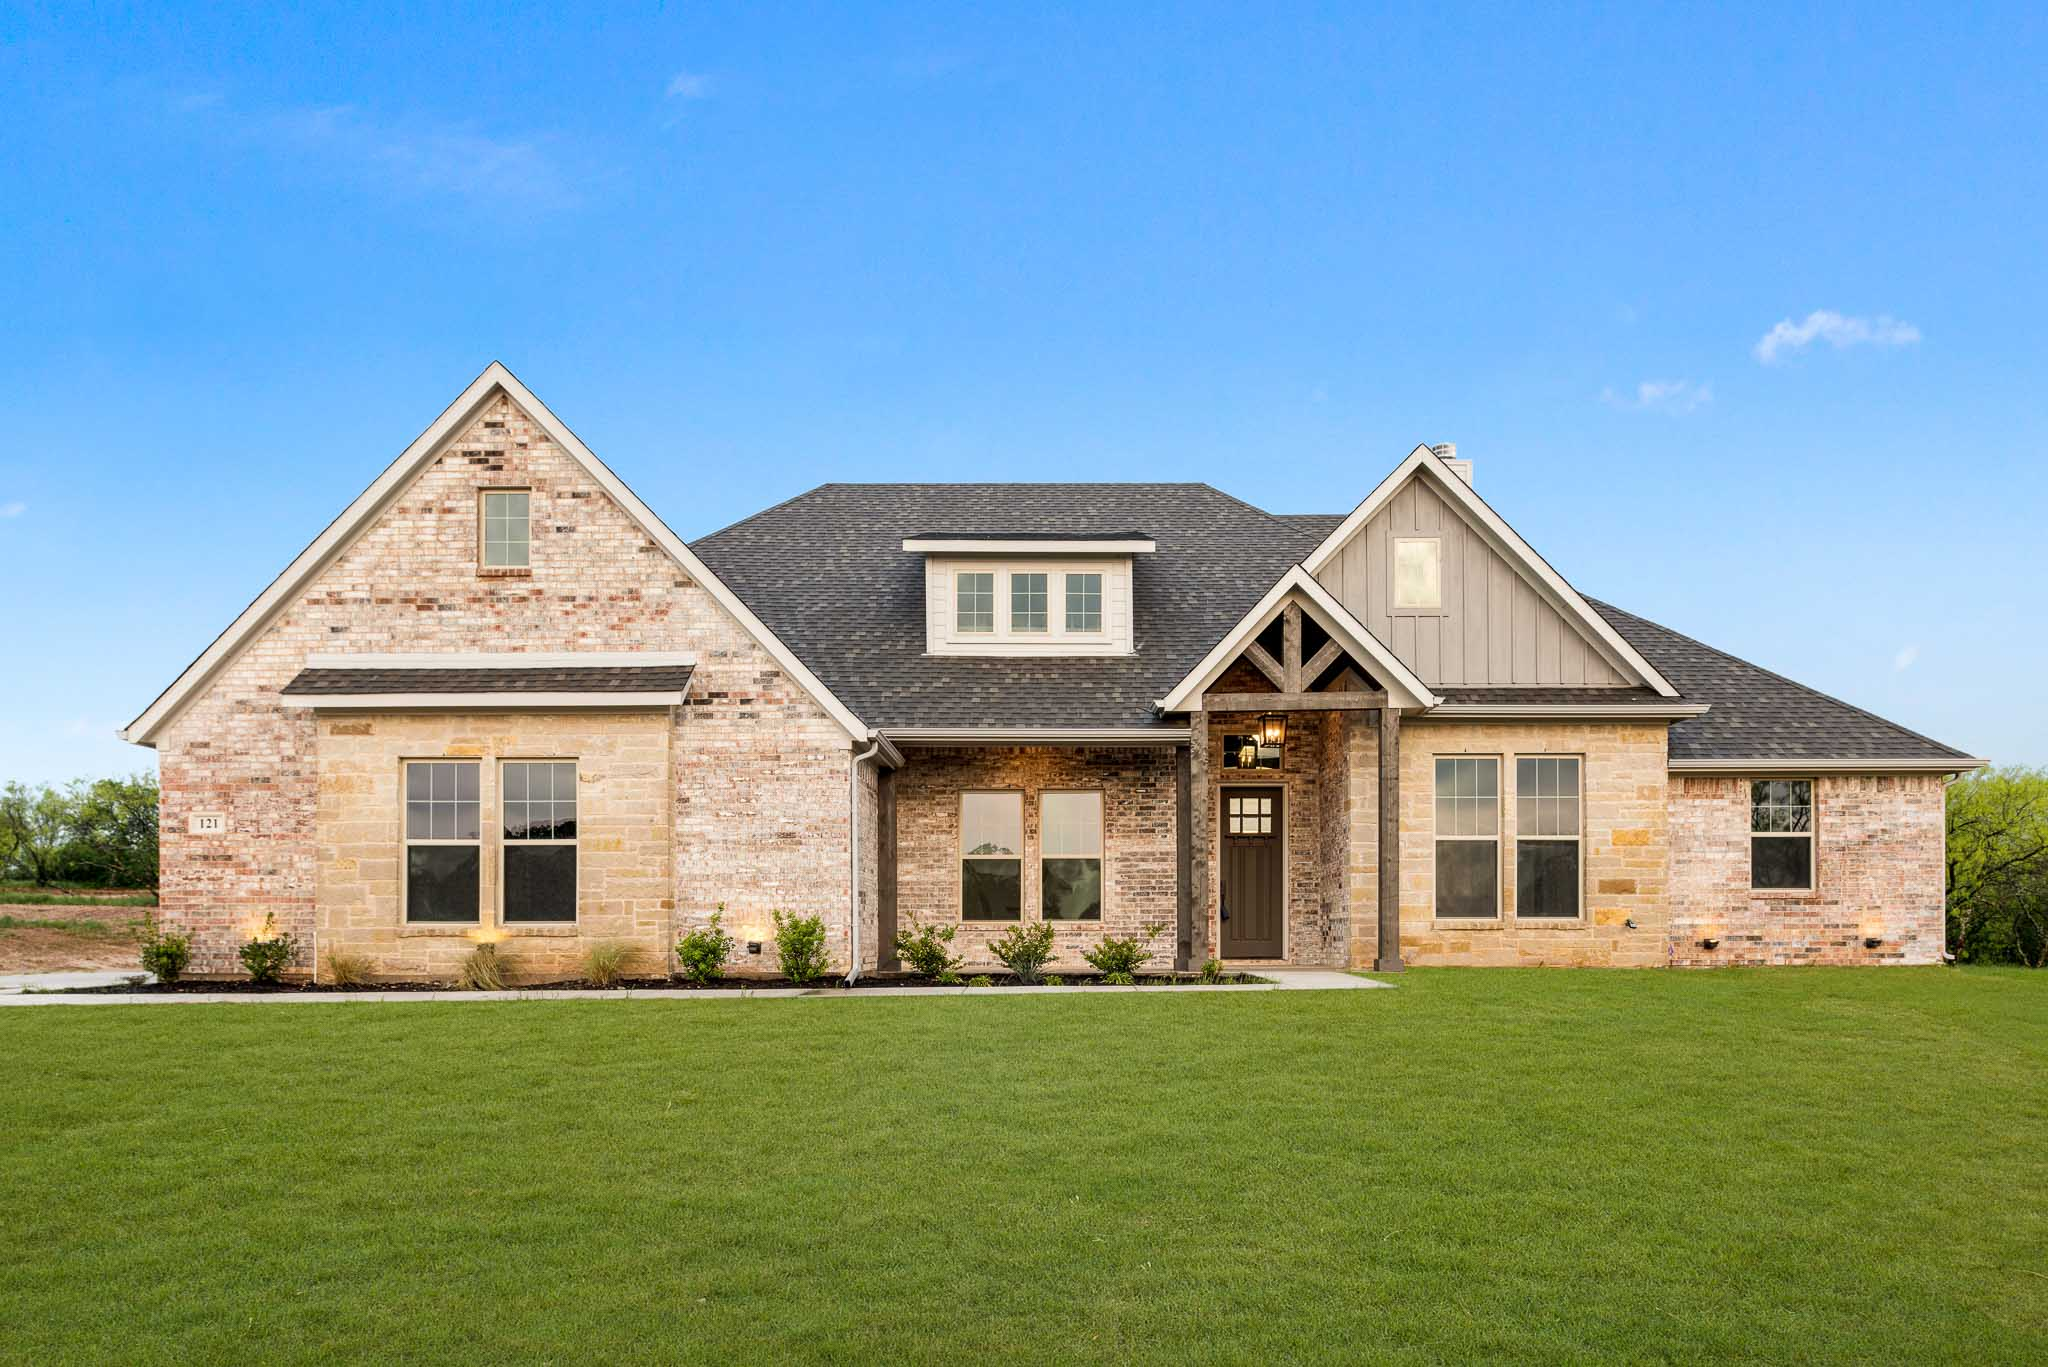 Front exterior home photo with green grass